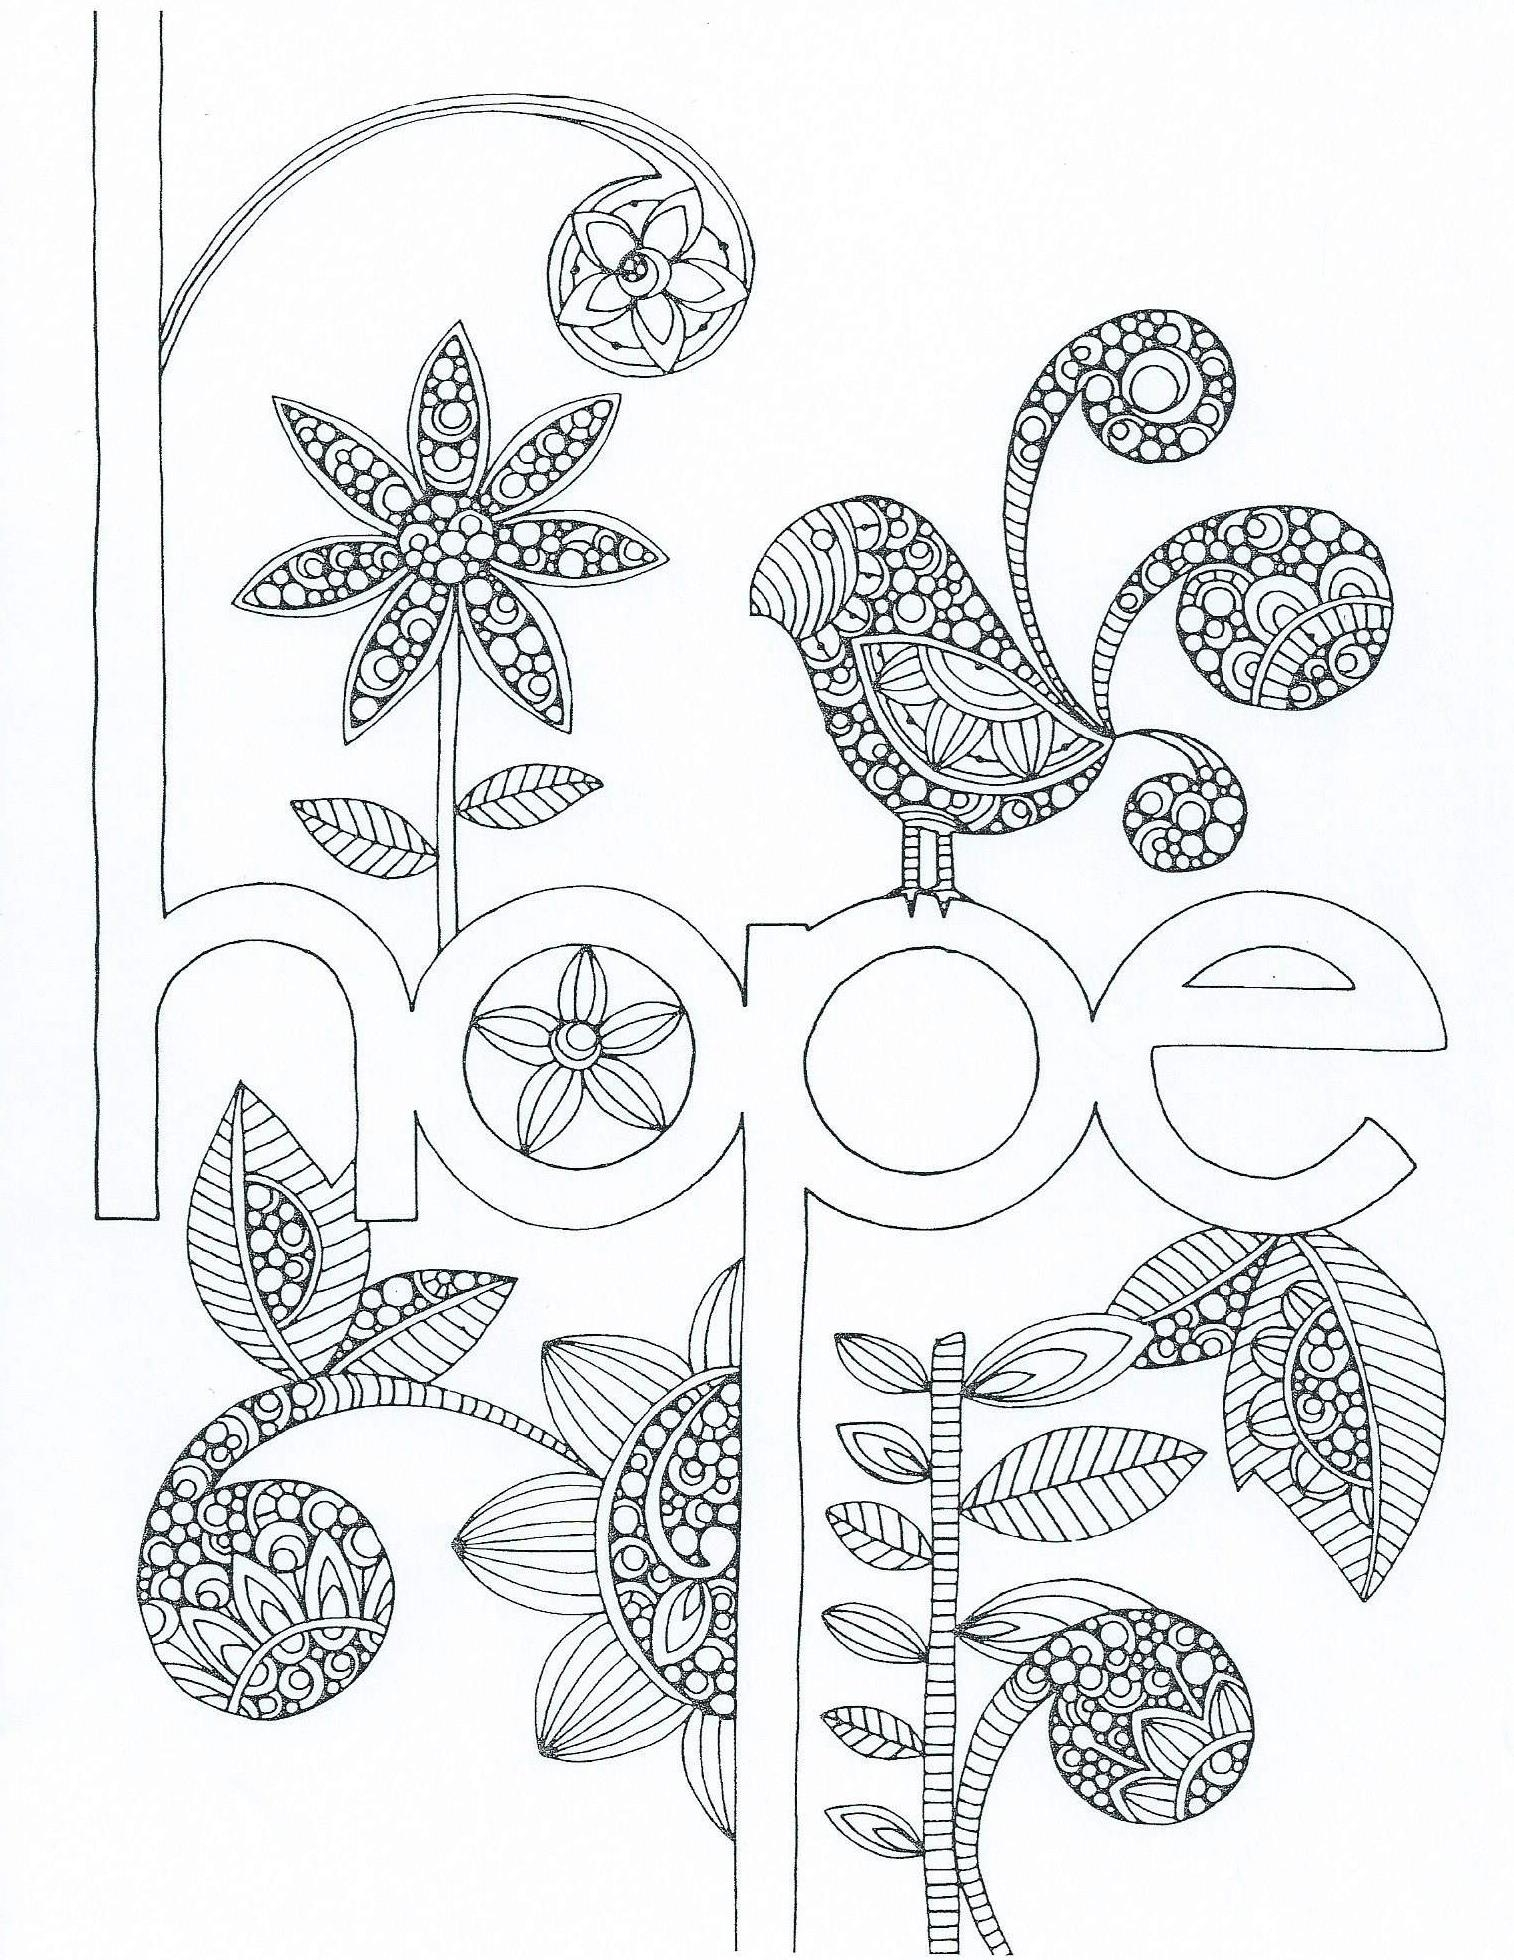 photo regarding Printable Zentangles named Zentangle Coloring Internet pages Printable at  No cost